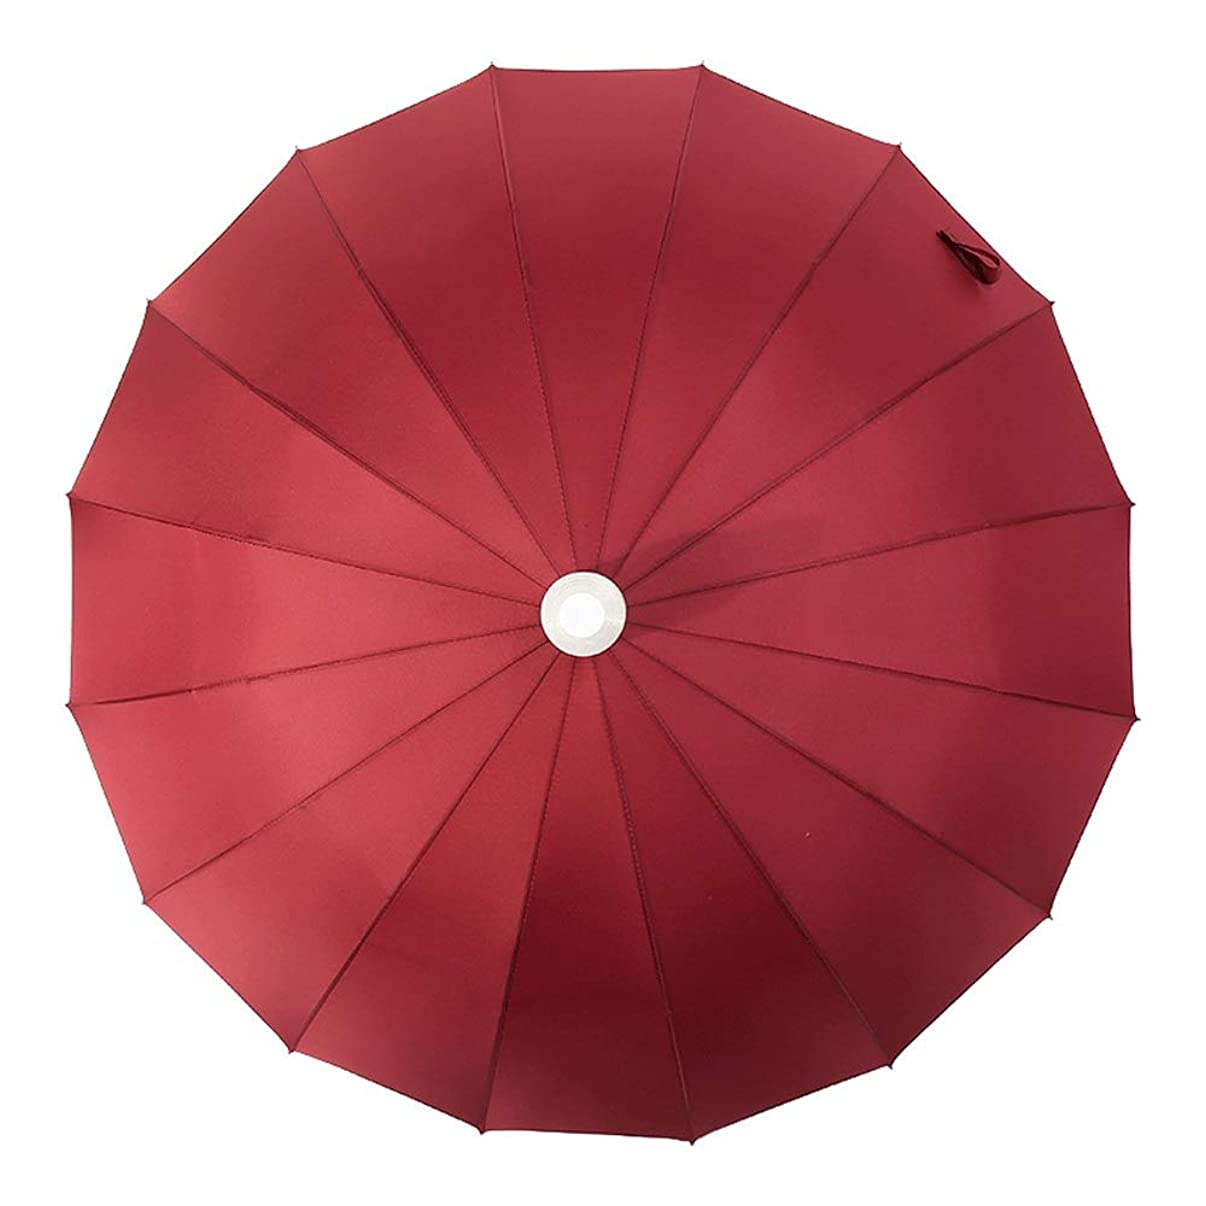 Oversized Long Handle Straight Umbrella,Golf Umbrella Windproof,Non-Slip Handles and Men's and Women's Protective Travel Kits (Color : Red)